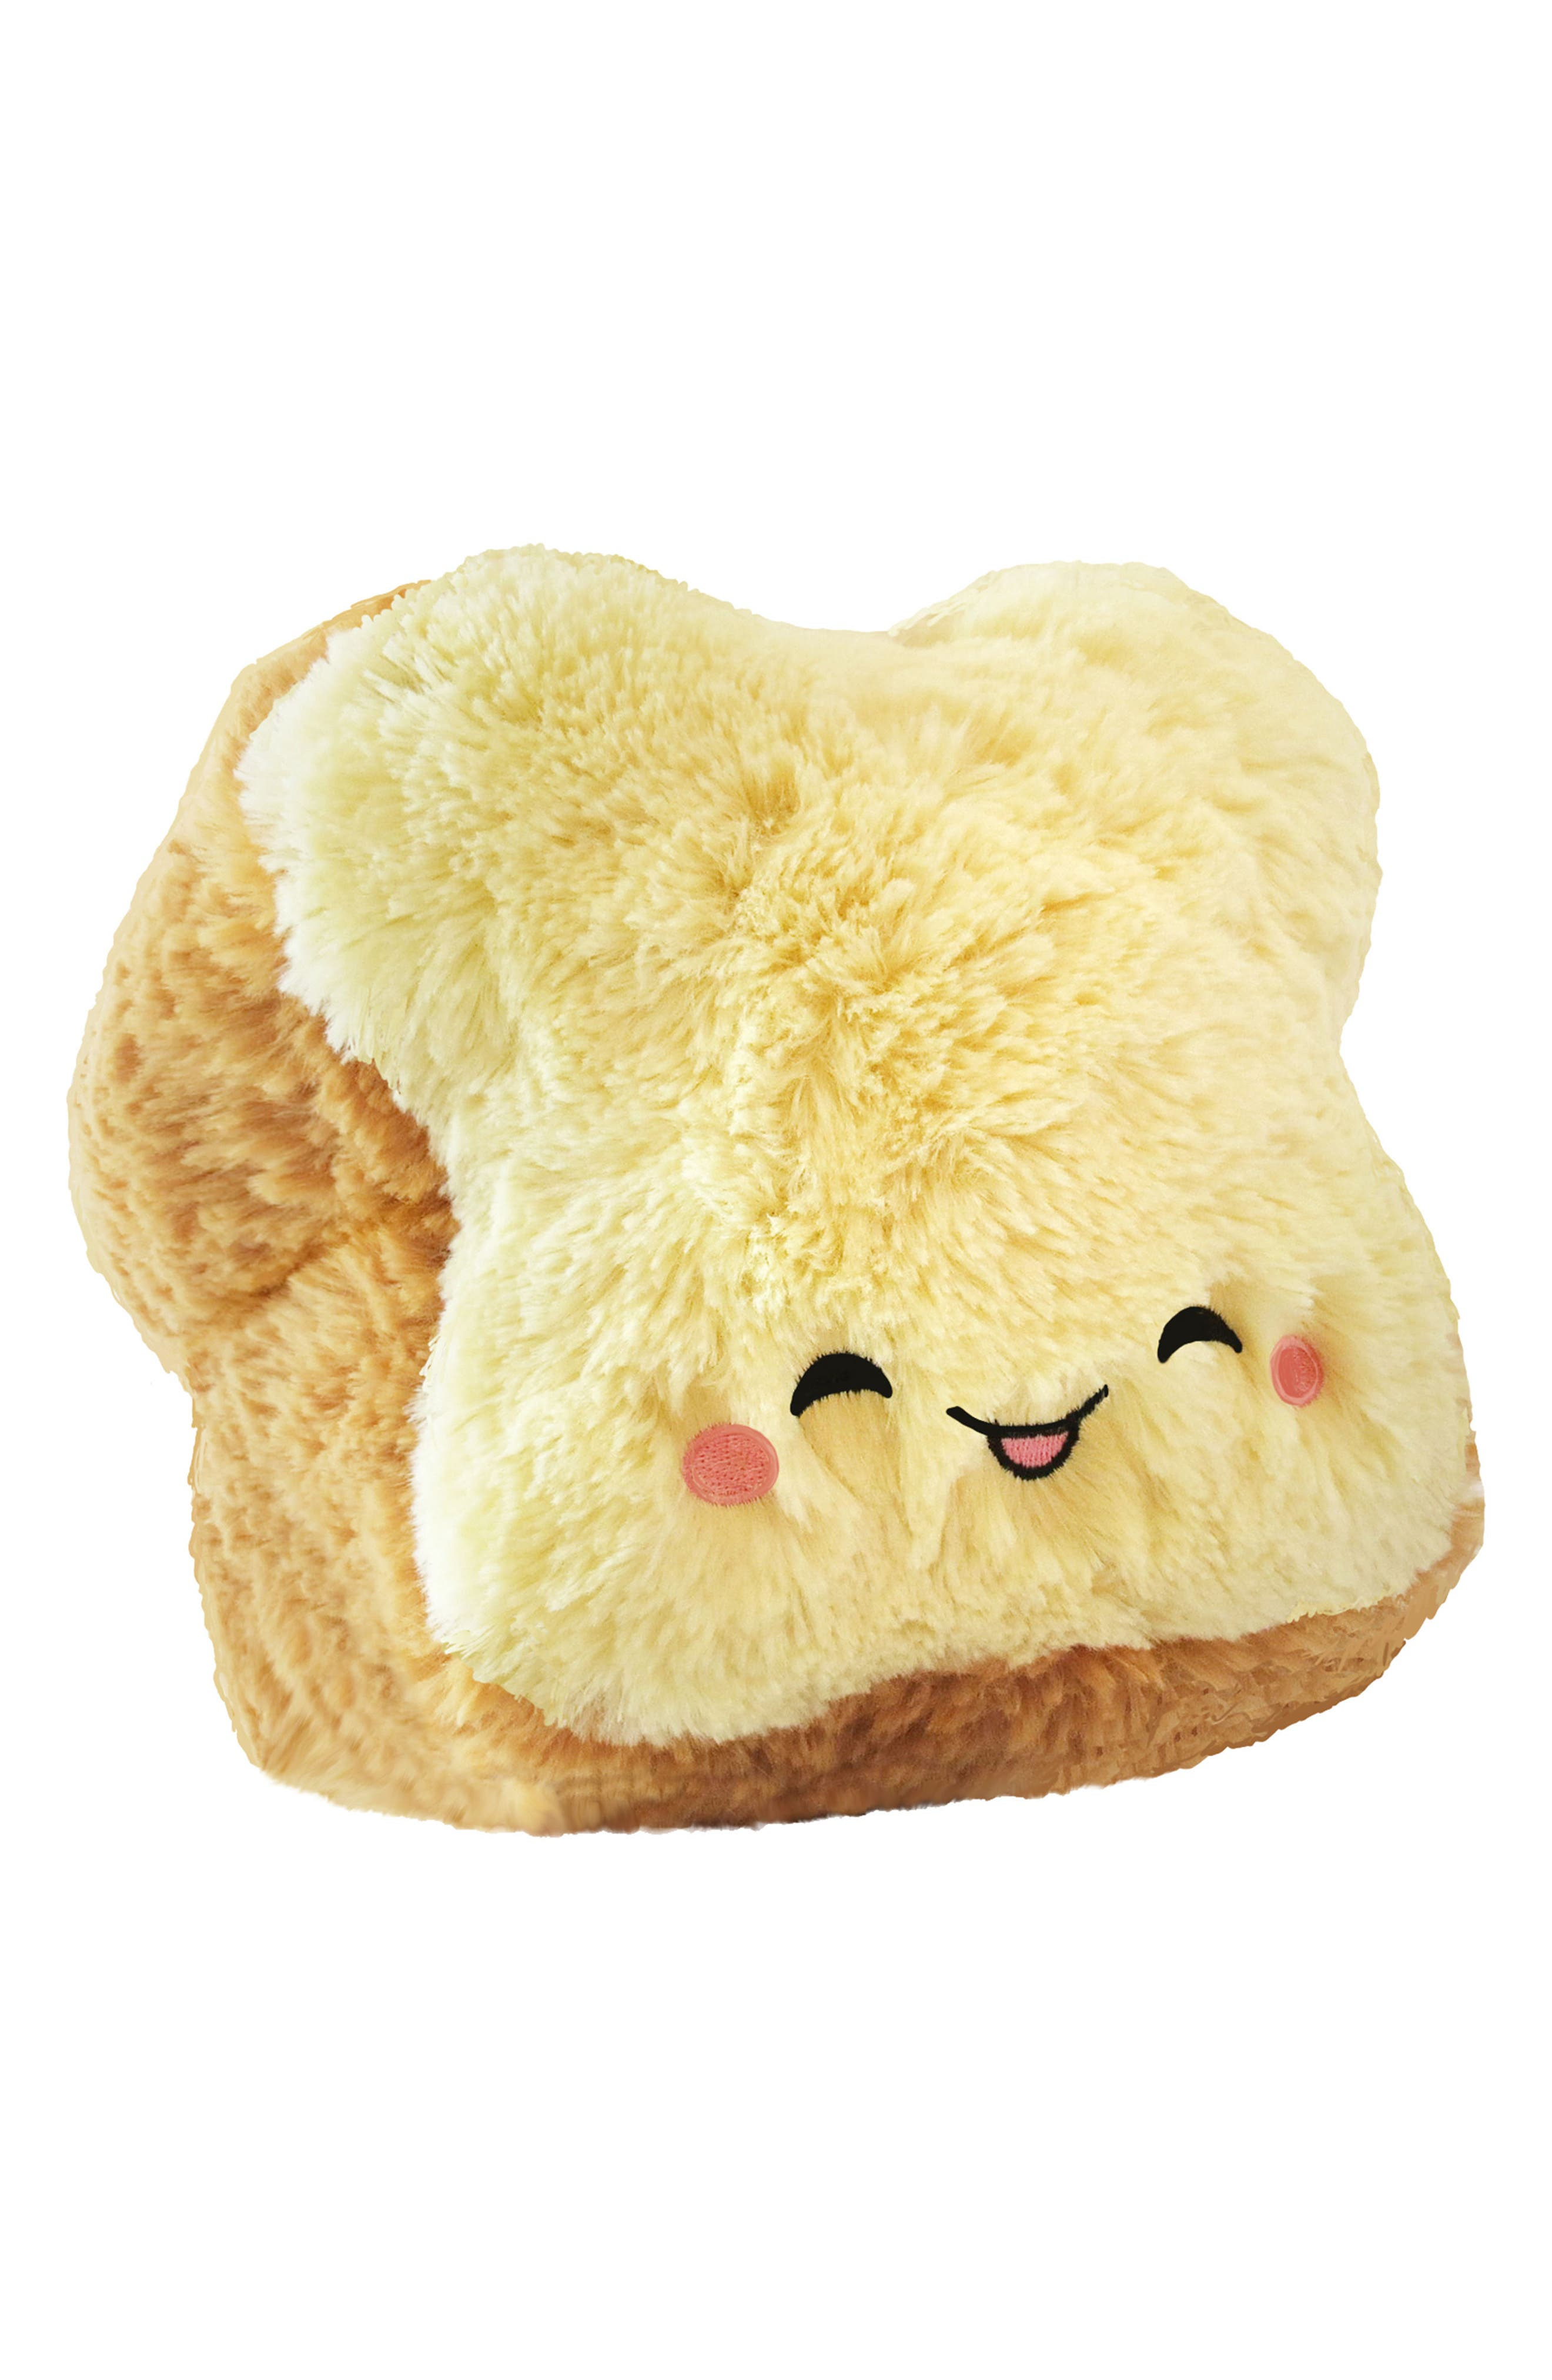 Alternate Image 1 Selected - Squishable Mini Loaf of Bread Stuffed Toy